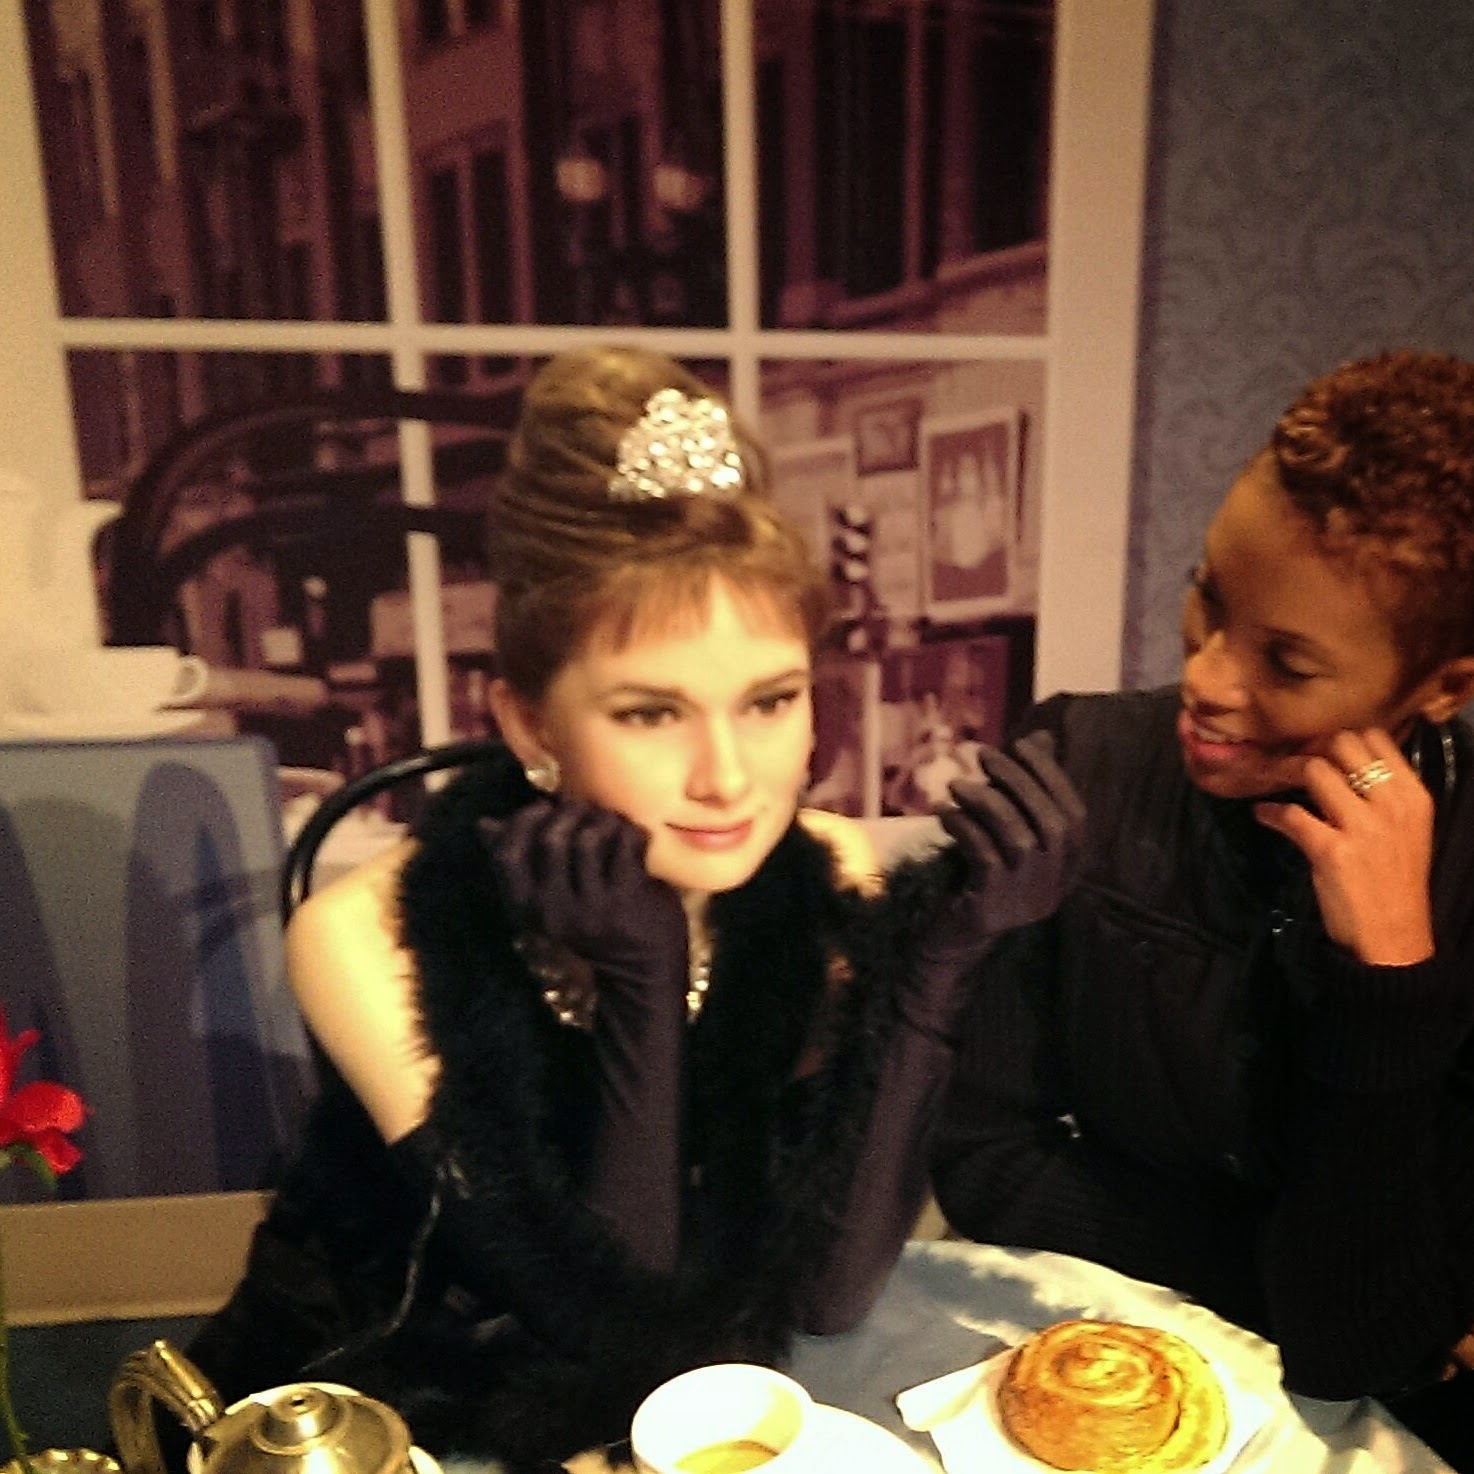 Audry%2BHepburn Hangout With Your Favorite Celebrities at Madame Tussauds Hollywood